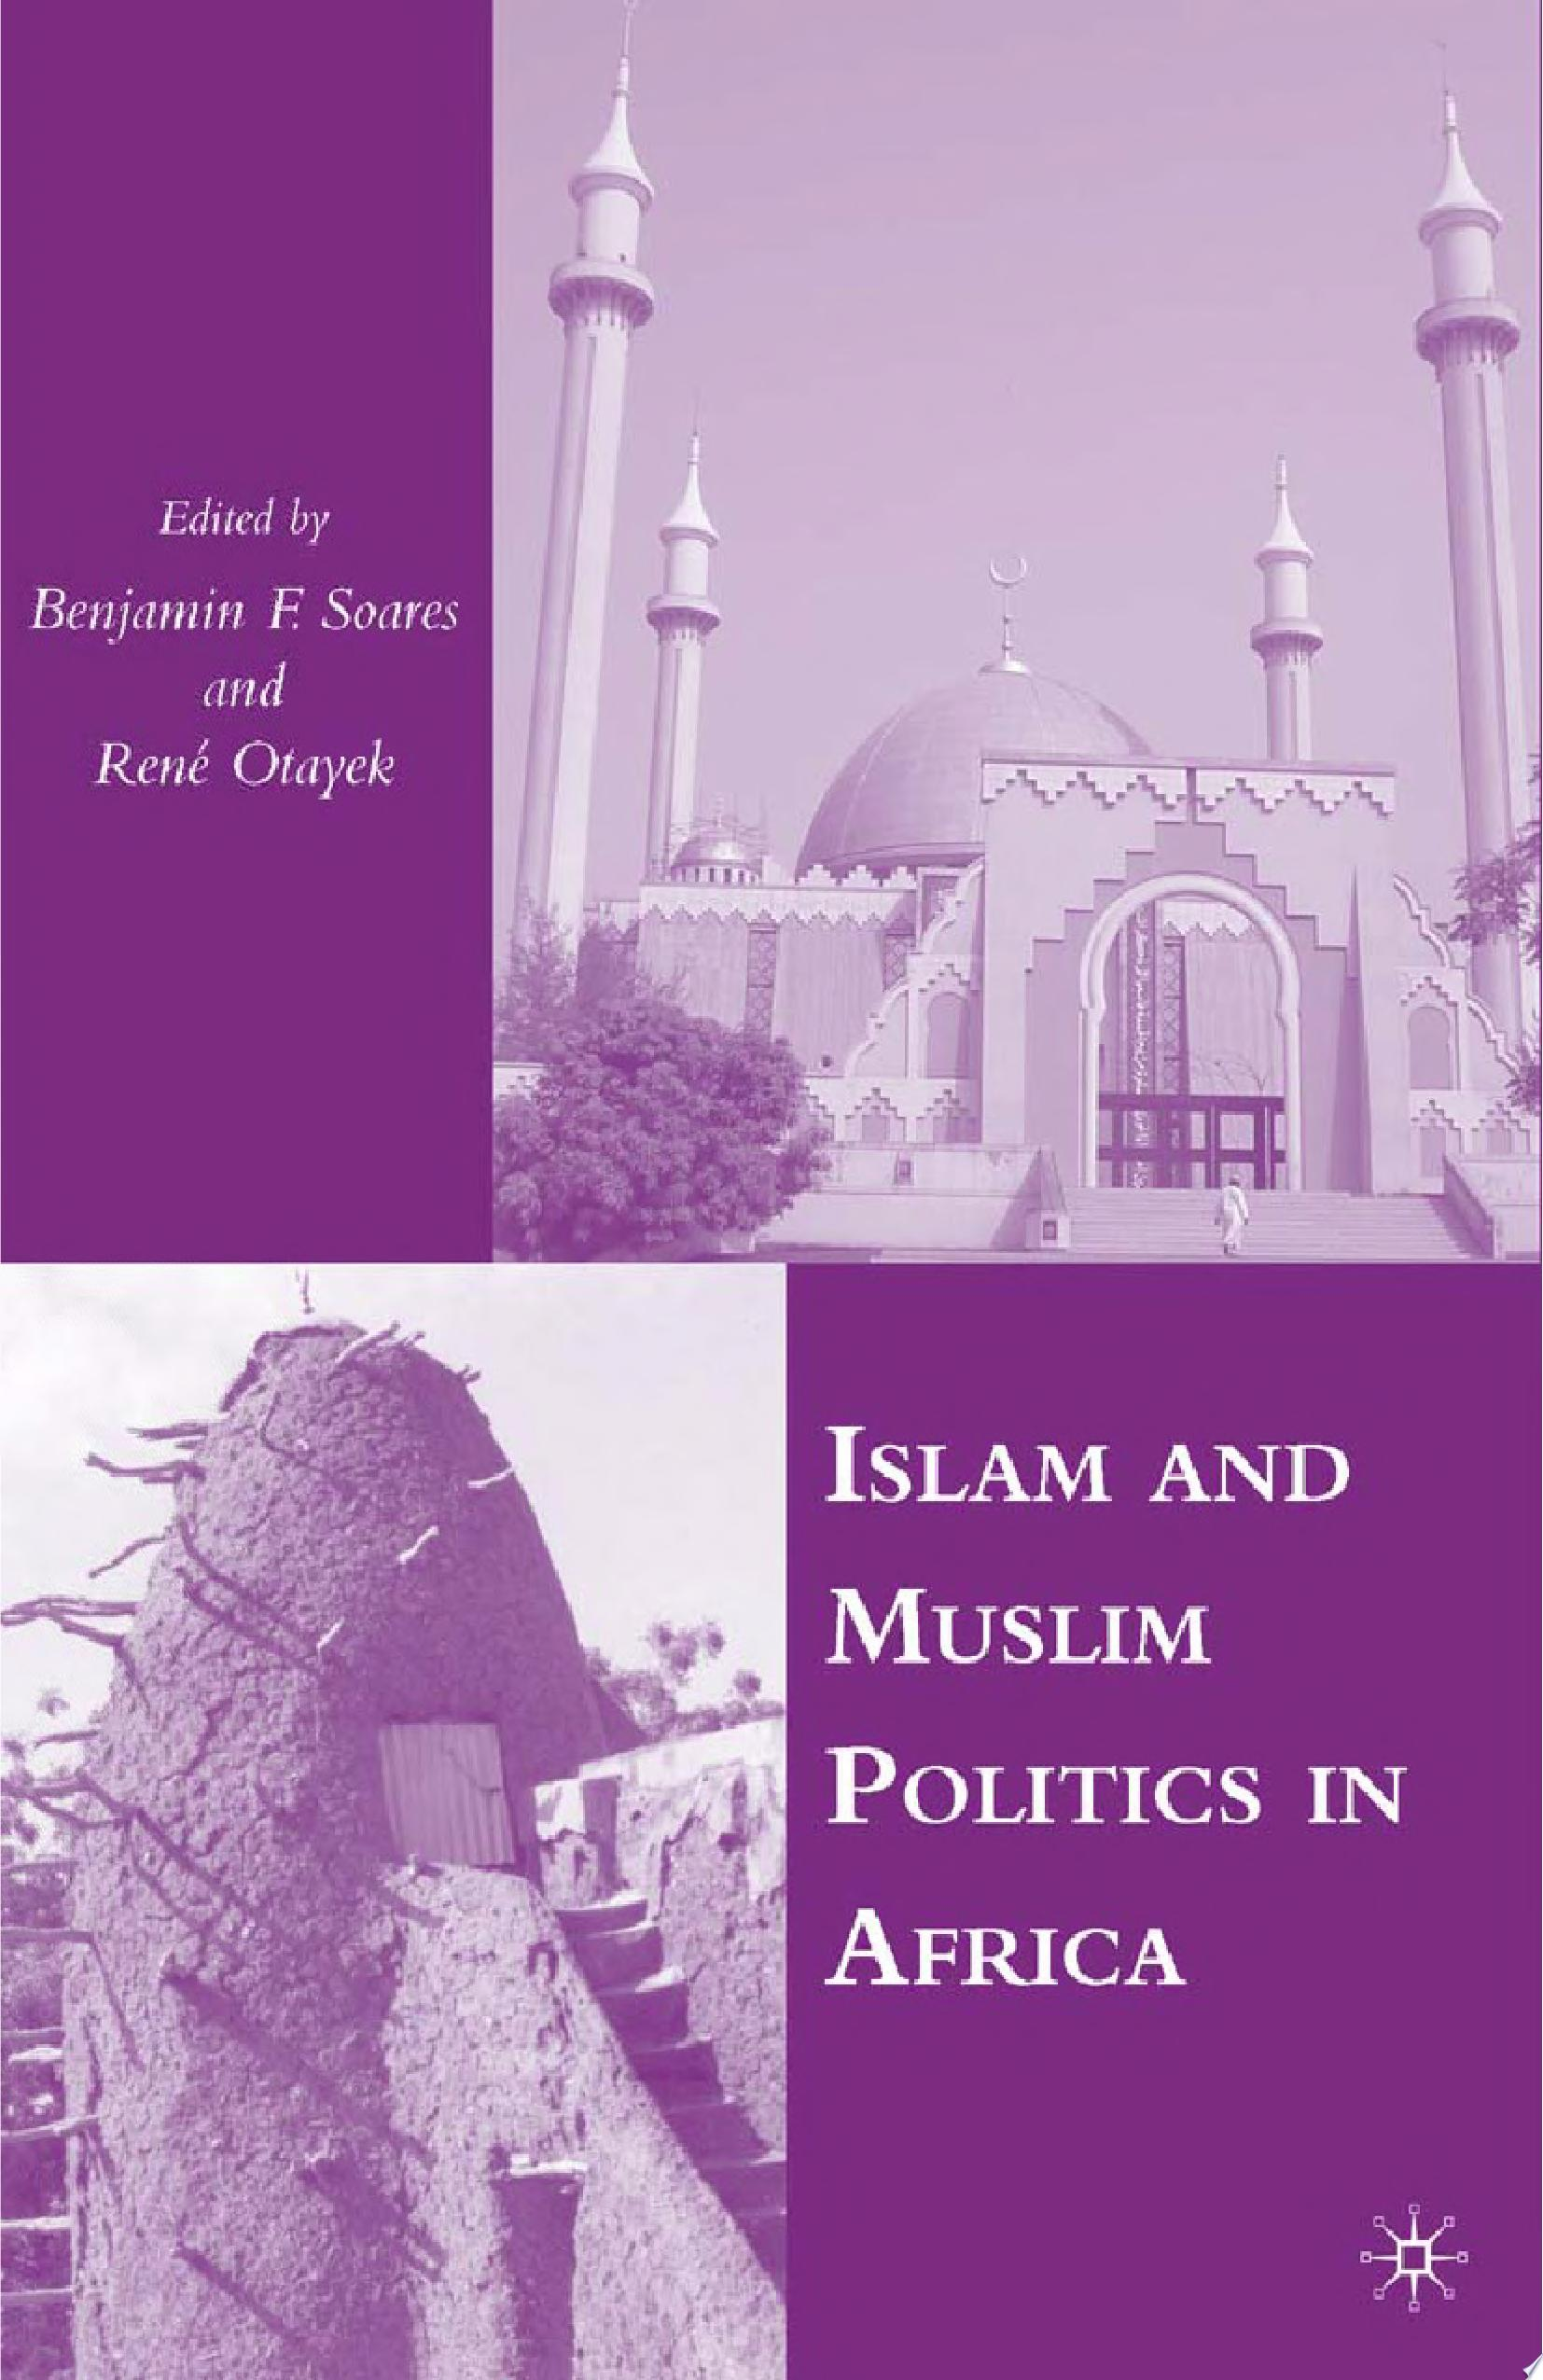 Islam and Muslim Politics in Africa